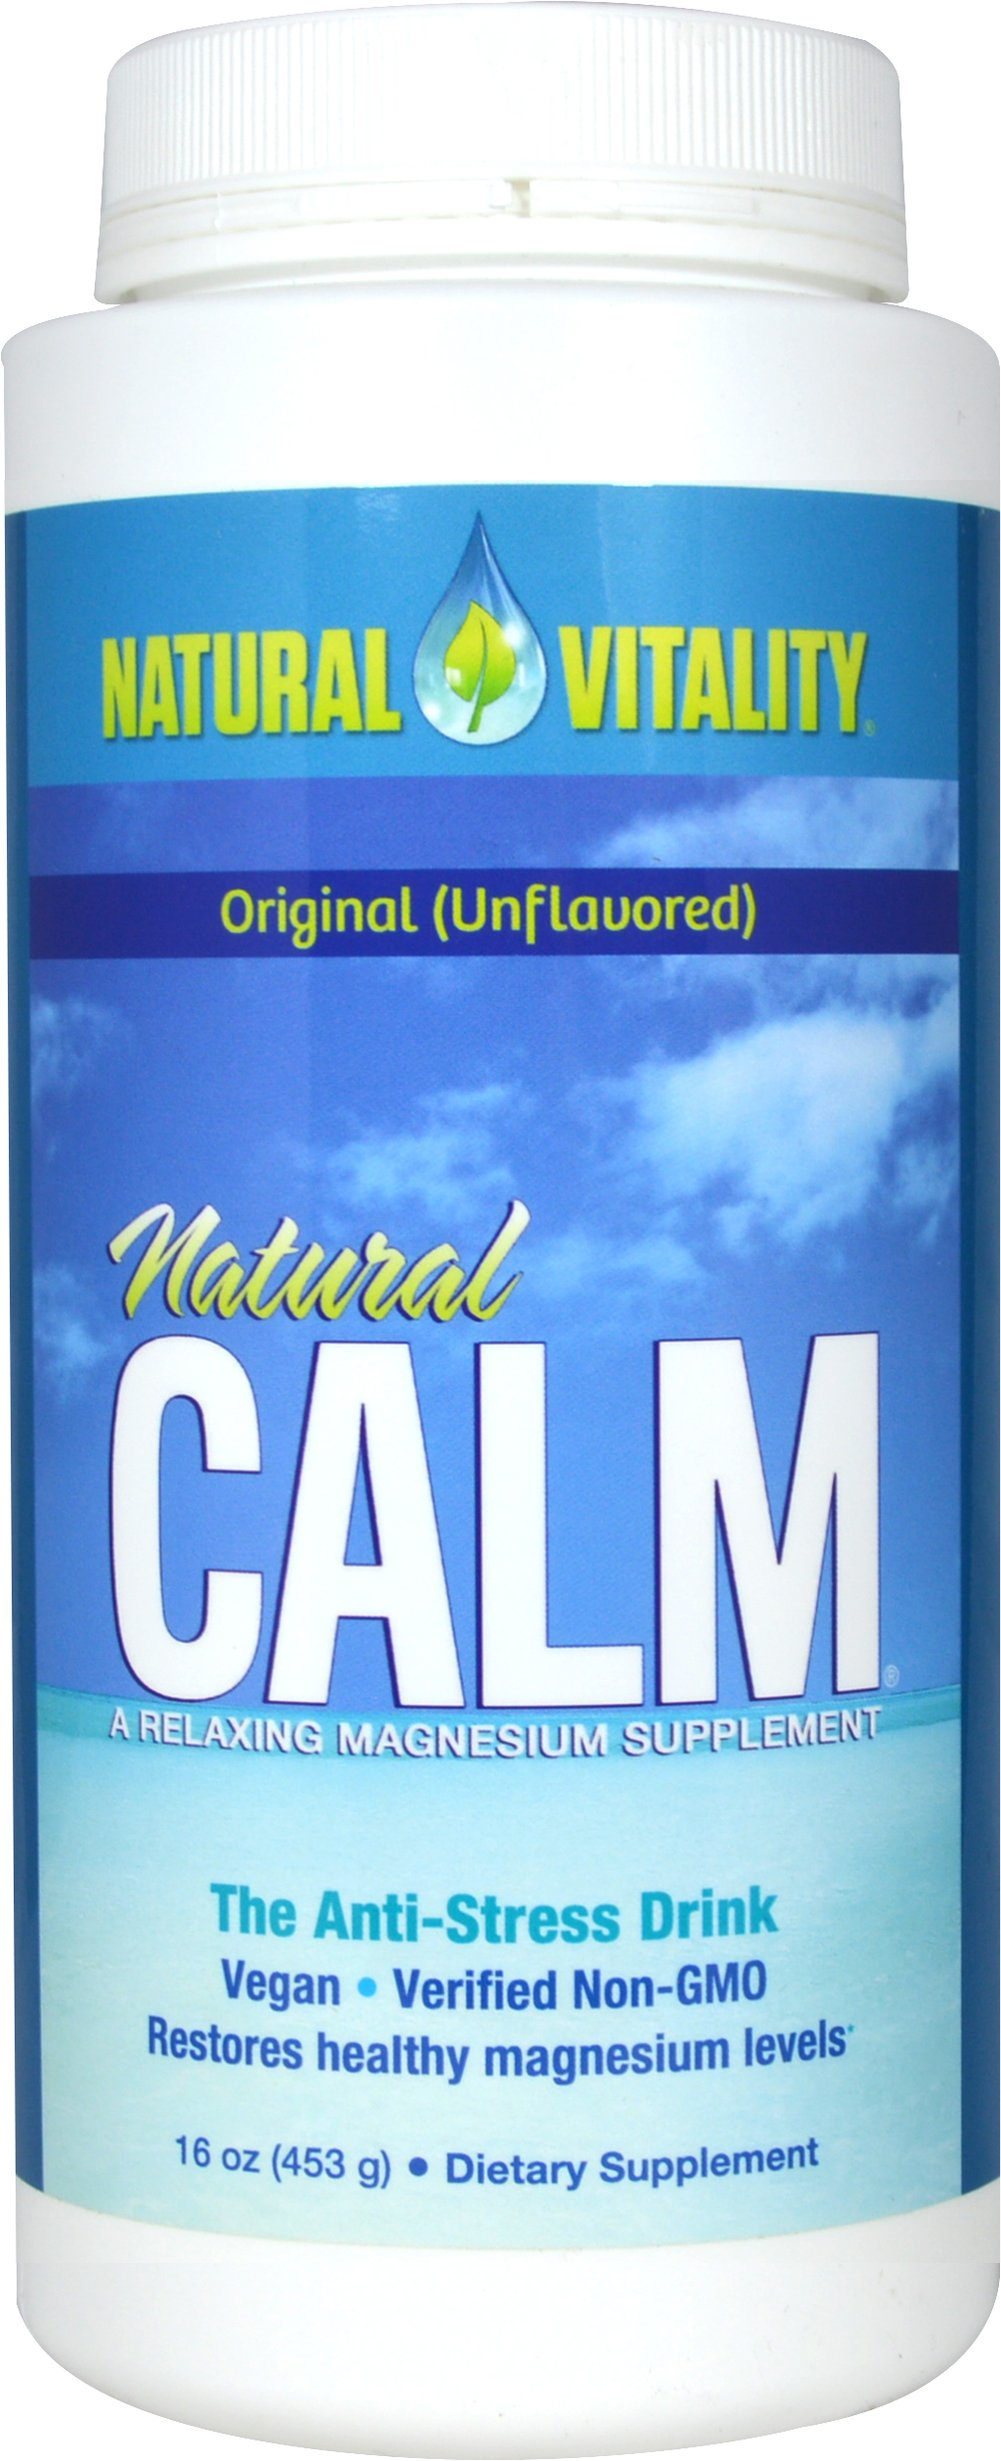 Natural Calm Original <strong>From the Manufacturer's Label:</strong> <p>Award-winning Natural Calm is the best-selling ionic magnesium supplement in the natural products market.</p><p>Manufactured by Natural Vitality</p><p></p> 16 oz Powder  $23.97